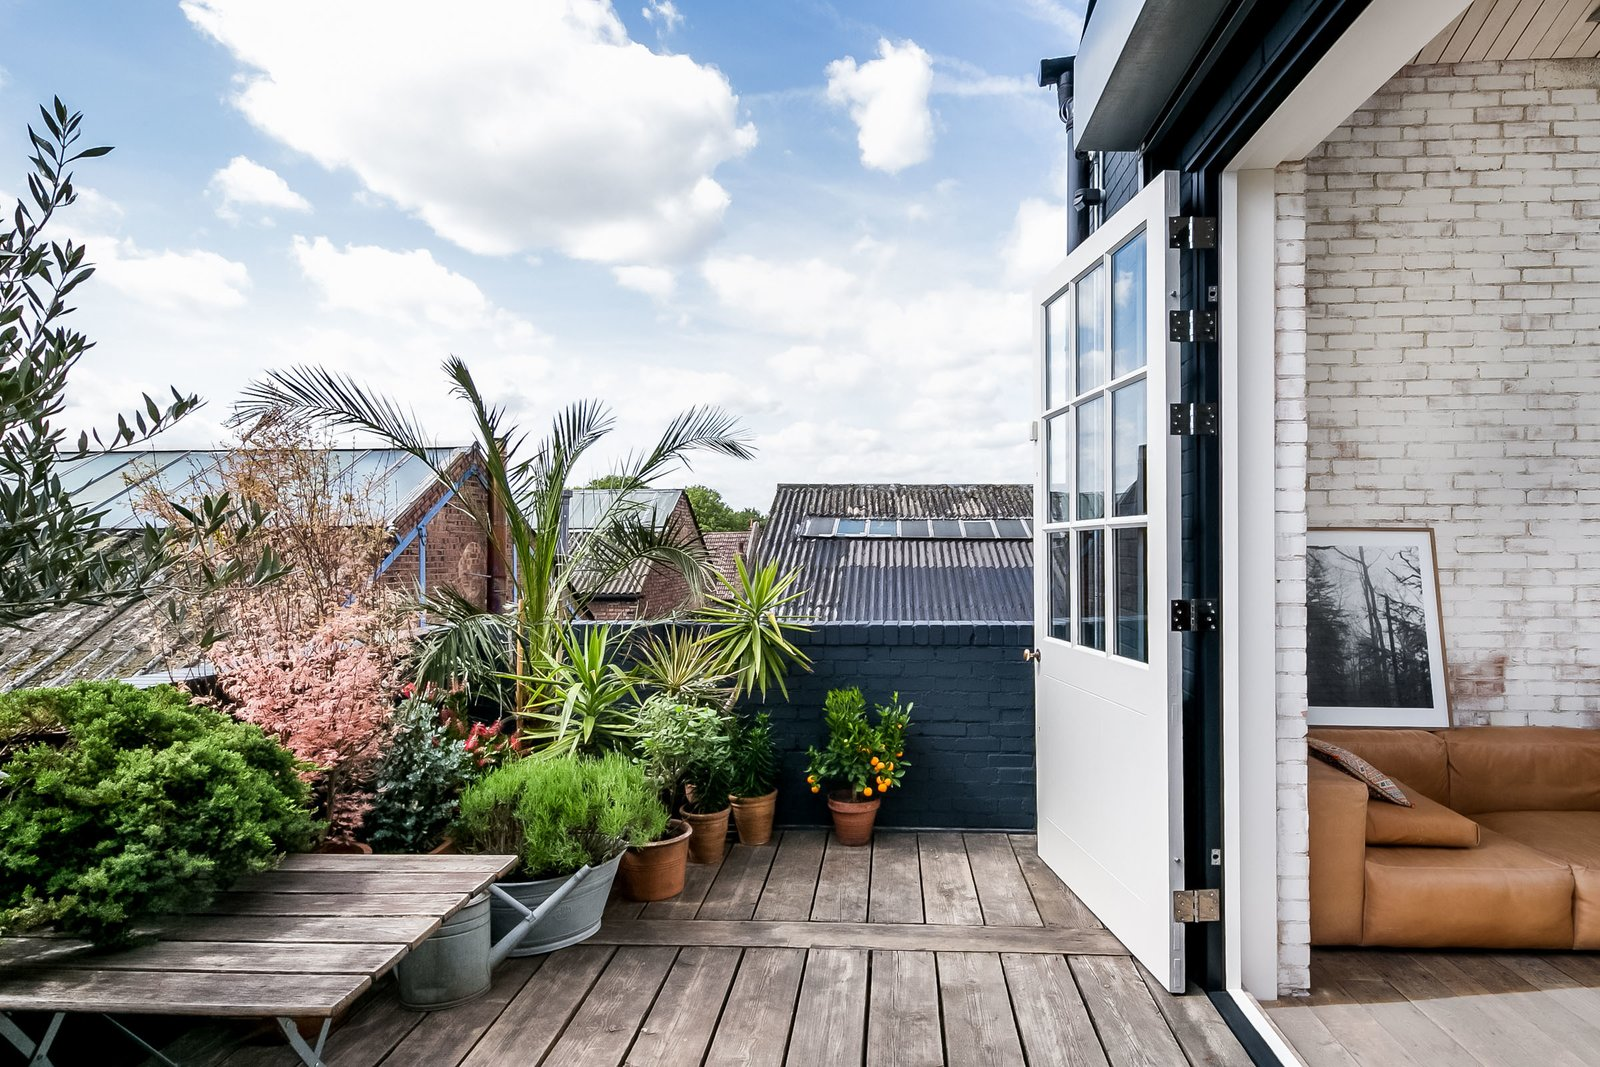 Outdoor, Shrubs, Wood Patio, Porch, Deck, Flowers, Rooftop, and Small Patio, Porch, Deck The generous decked terrace gets plenty of sun, making it a great spot for plants that prefer warmer climes.  Photo 6 of 11 in Snap Up This Converted  Warehouse in London For $2.1M